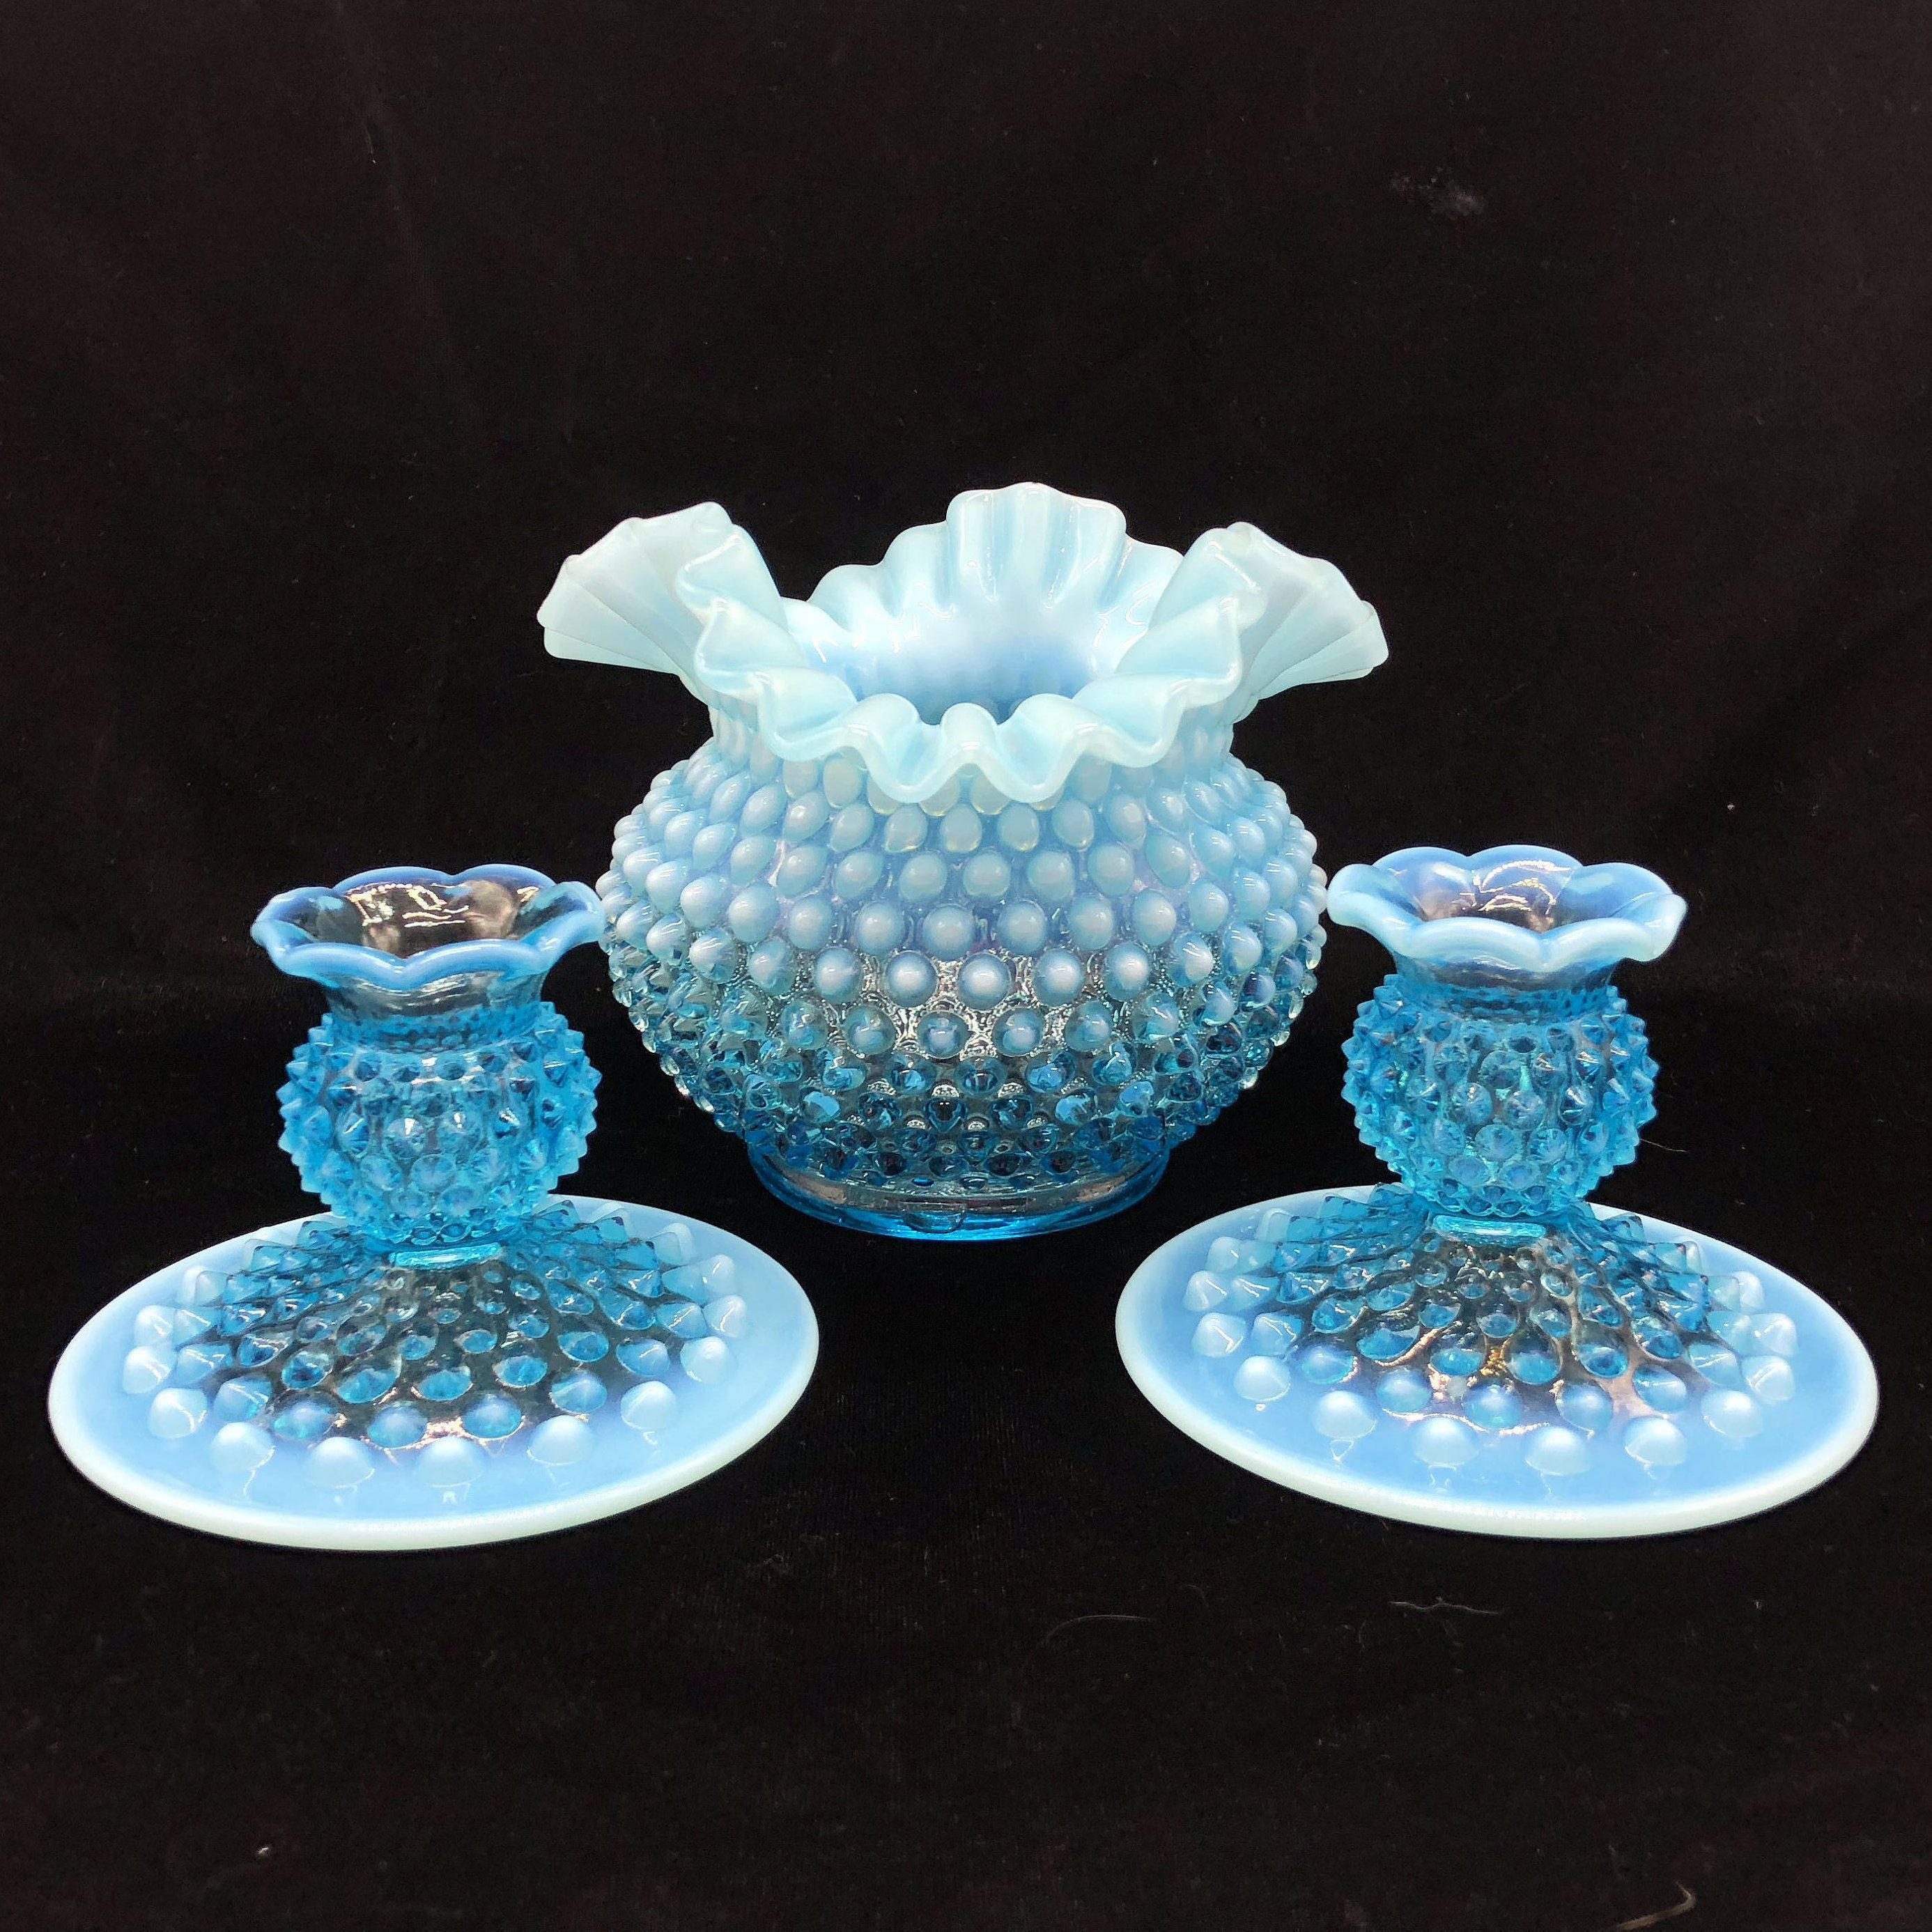 waterford blue crystal vase of 37 fenton blue glass vase the weekly world pertaining to fenton hobnail glass centerpiece set blue opalescent vase candle